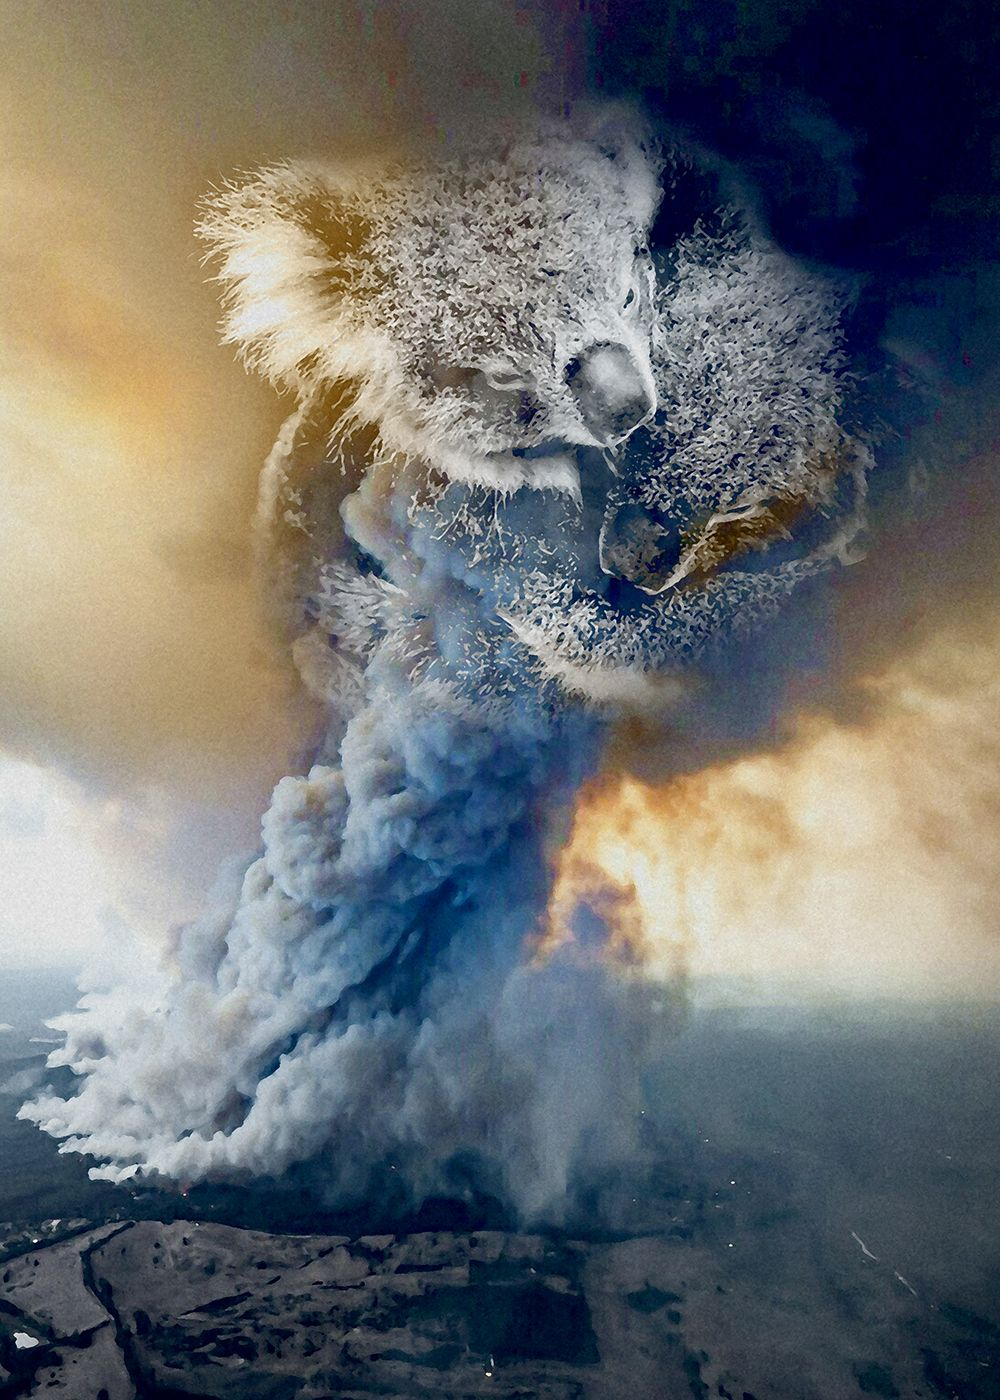 An art inspired by the forest fire that happened in Australia which left thousands of Koalas, Kangaroos and other wildlife homeless.  #climatechange #globalwarming #australia #earth #bushfire #fire #flames #smoke #koala #bear #wildlife #forest #nature #healtheworld